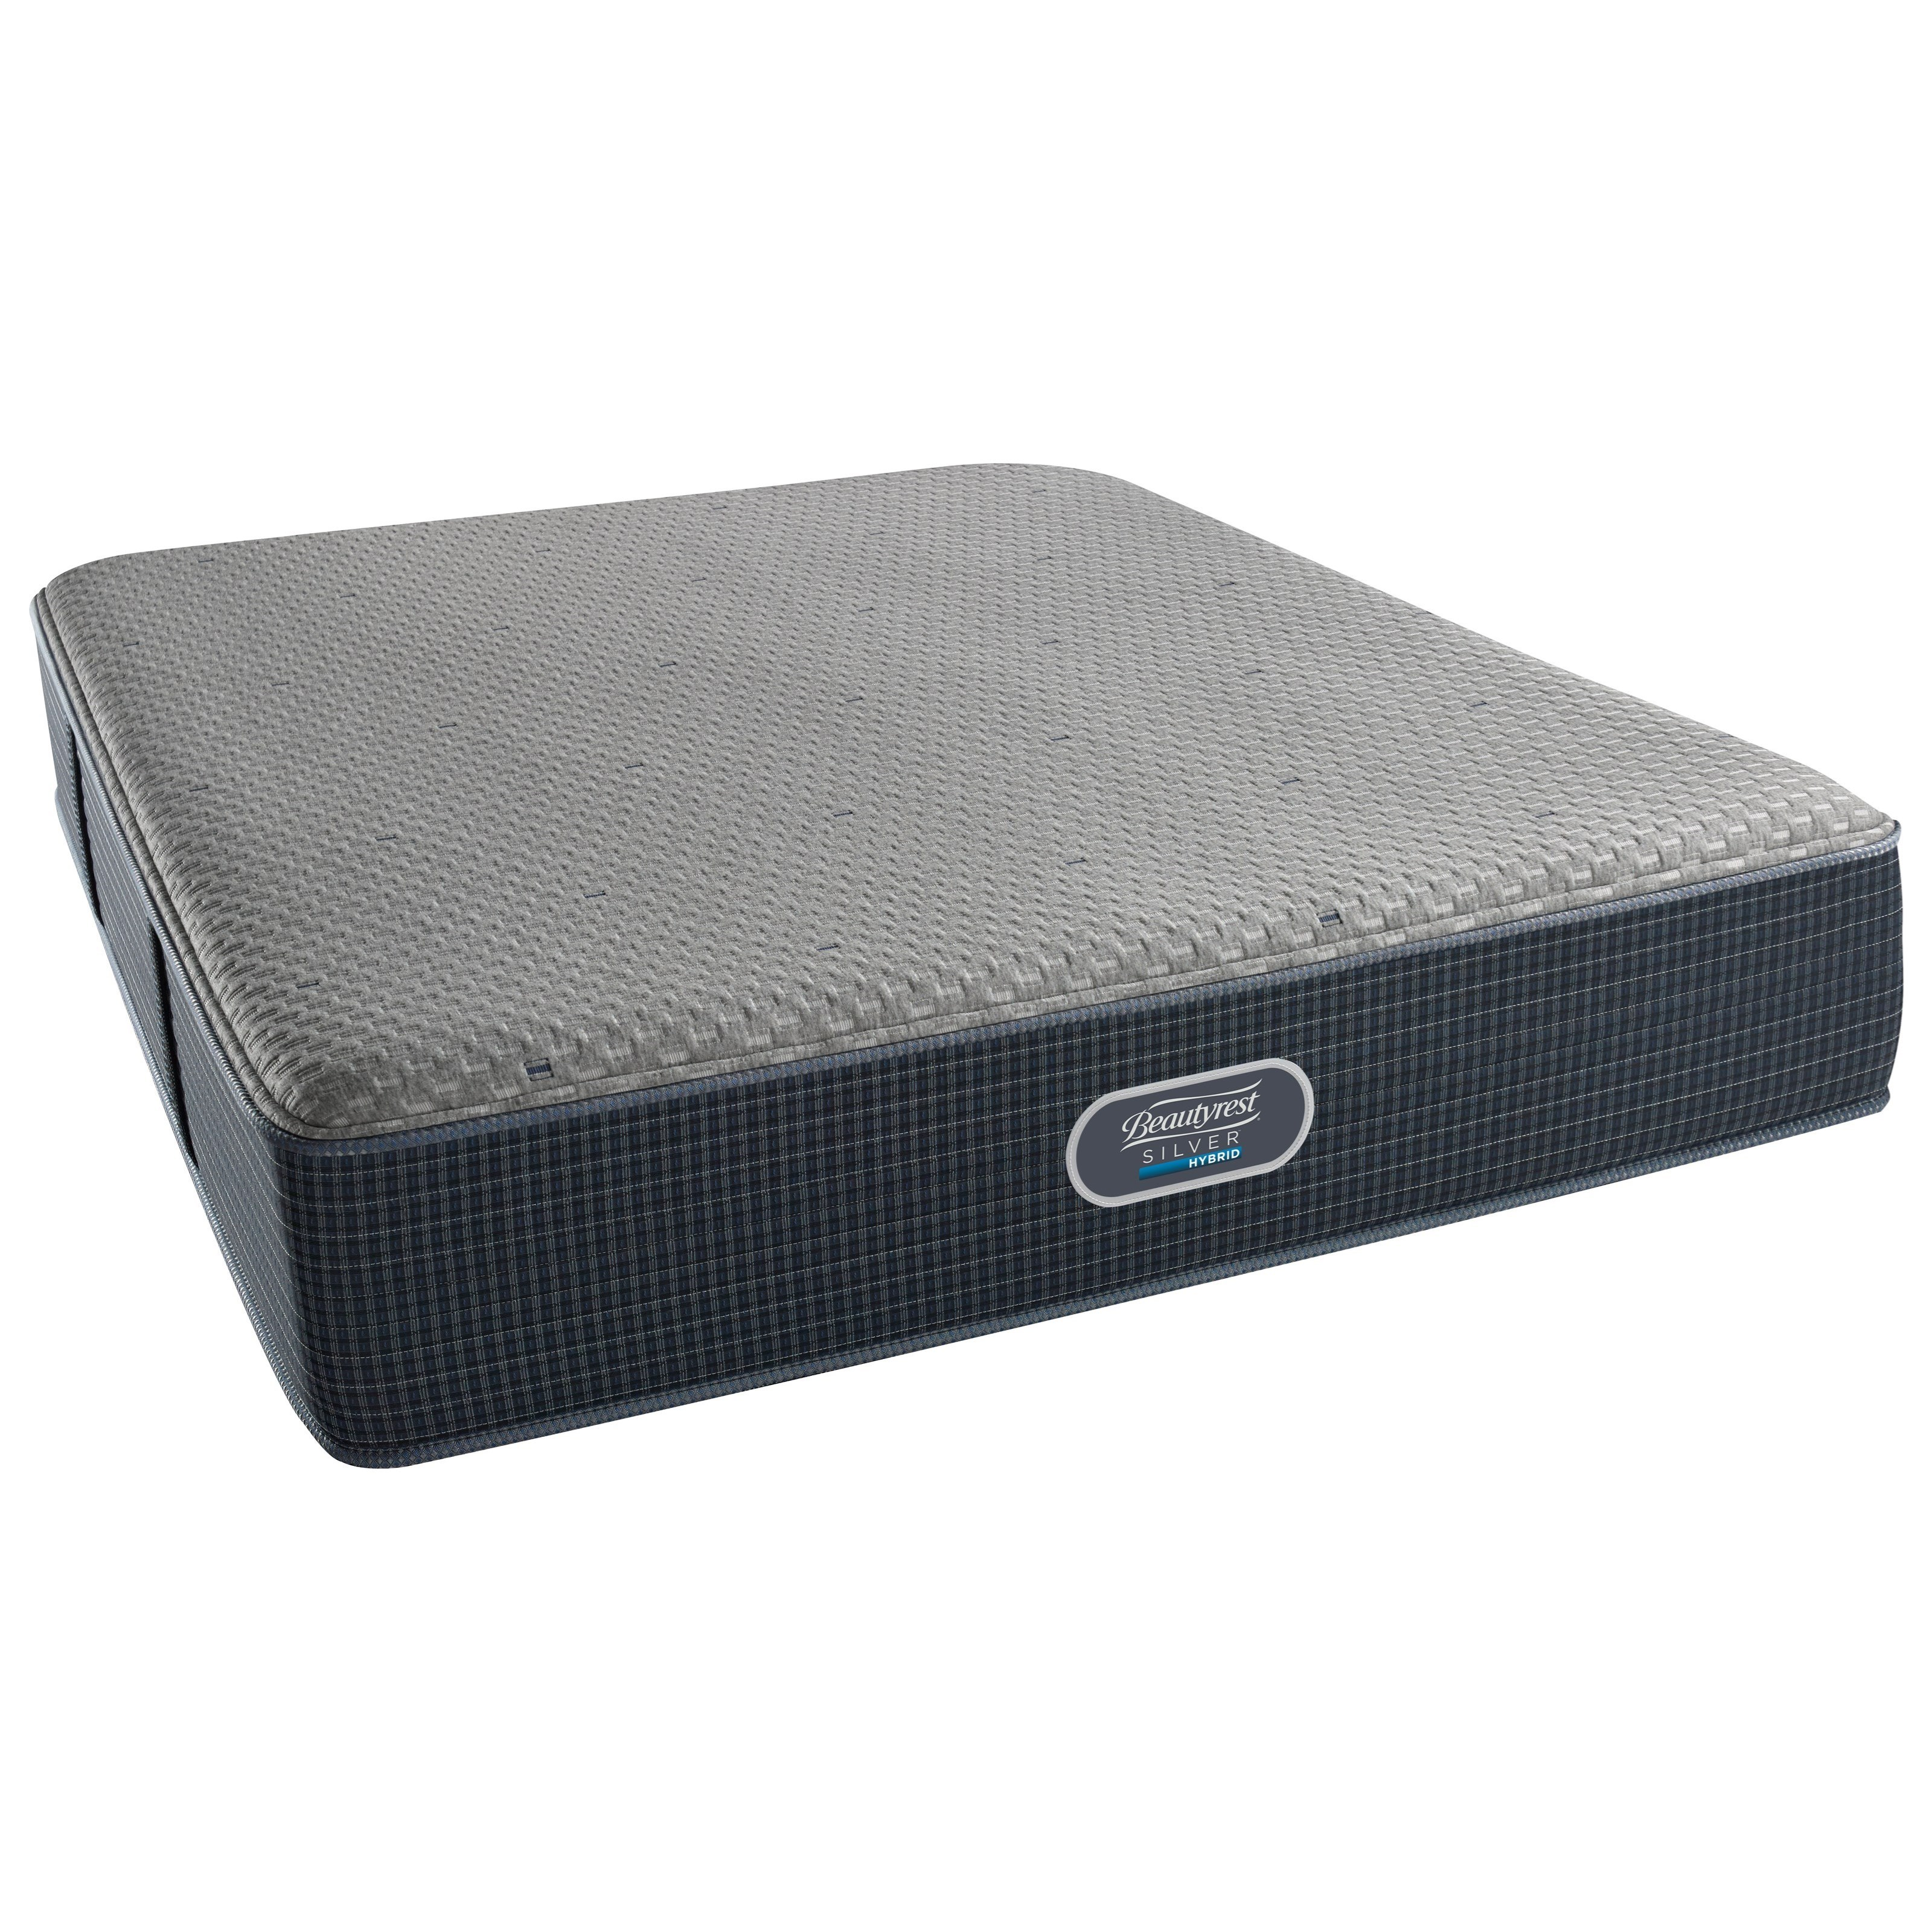 Beautyrest Silver Hybrid Beachwood Luxury Firm Full Mattress - Item Number: 700601000-1030